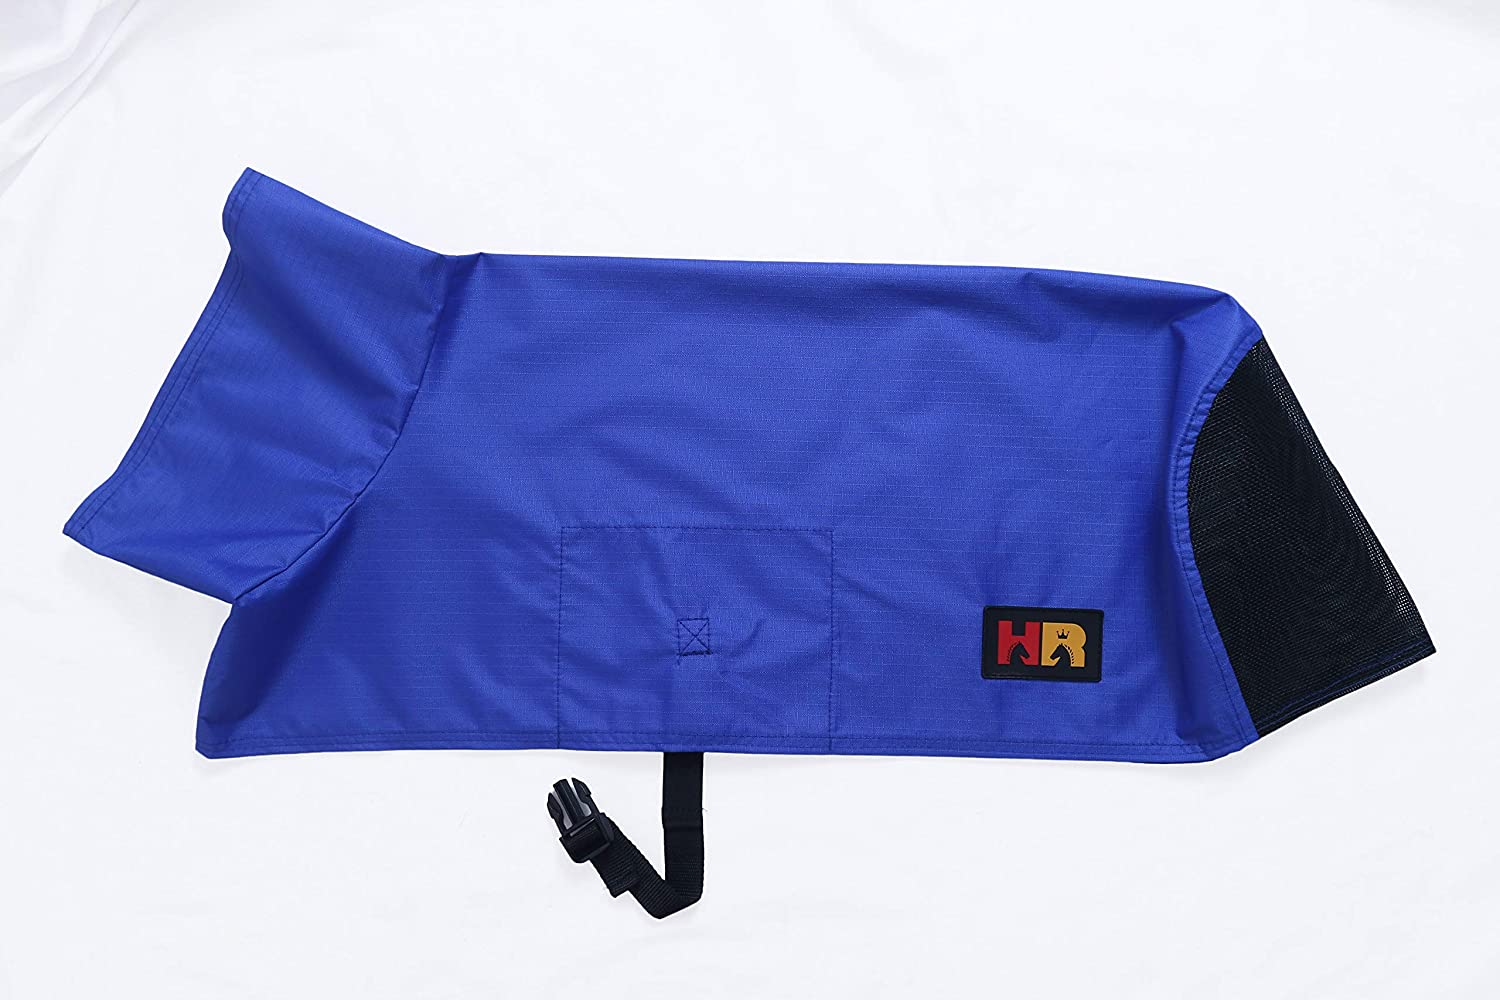 HR FARM 600D Ripstop Water Resistant Performance Sheep Blanket Lime)